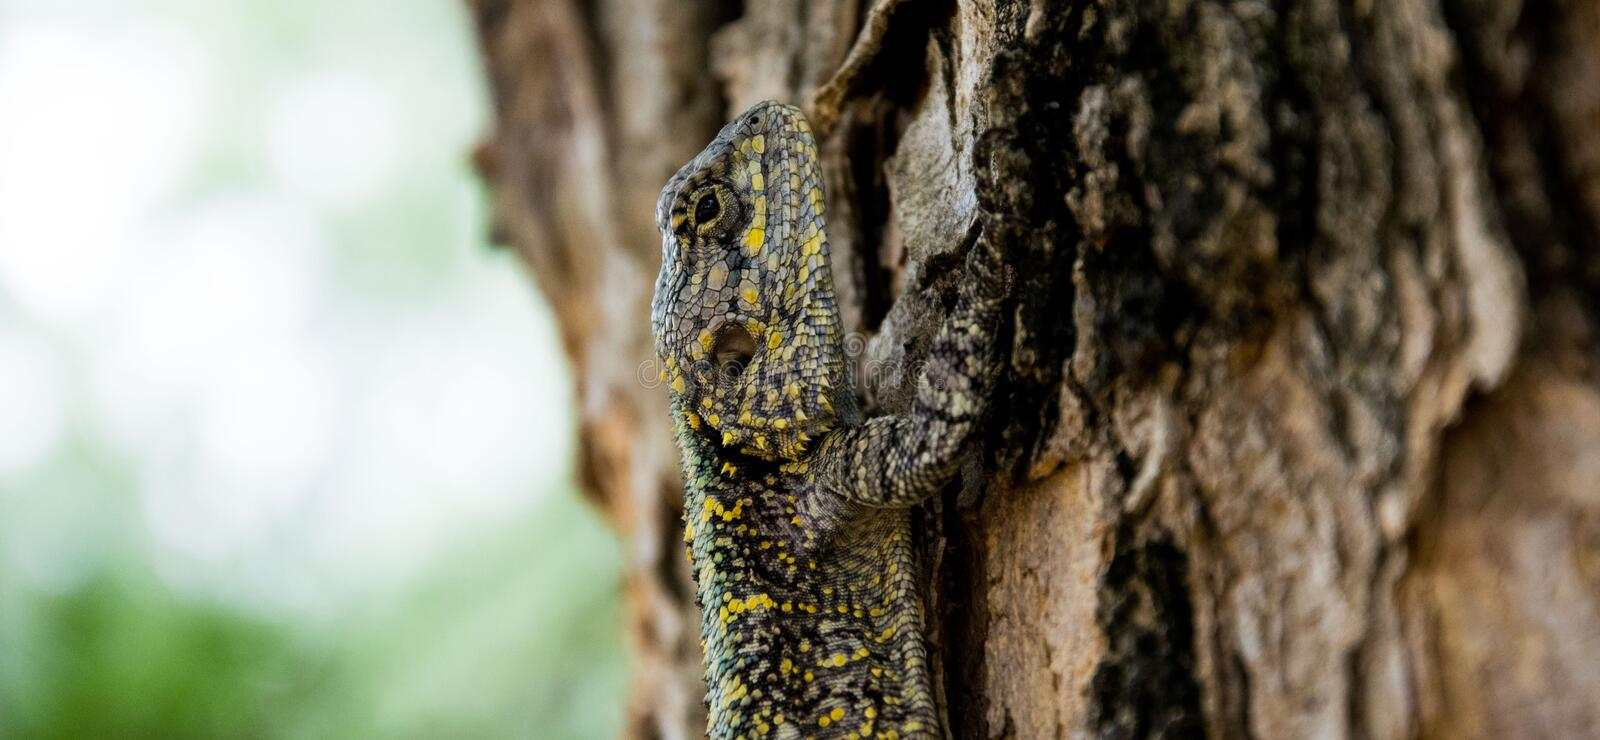 Brown Black Yellow Beige Lizard Climbing on Brown Tree royalty free stock images